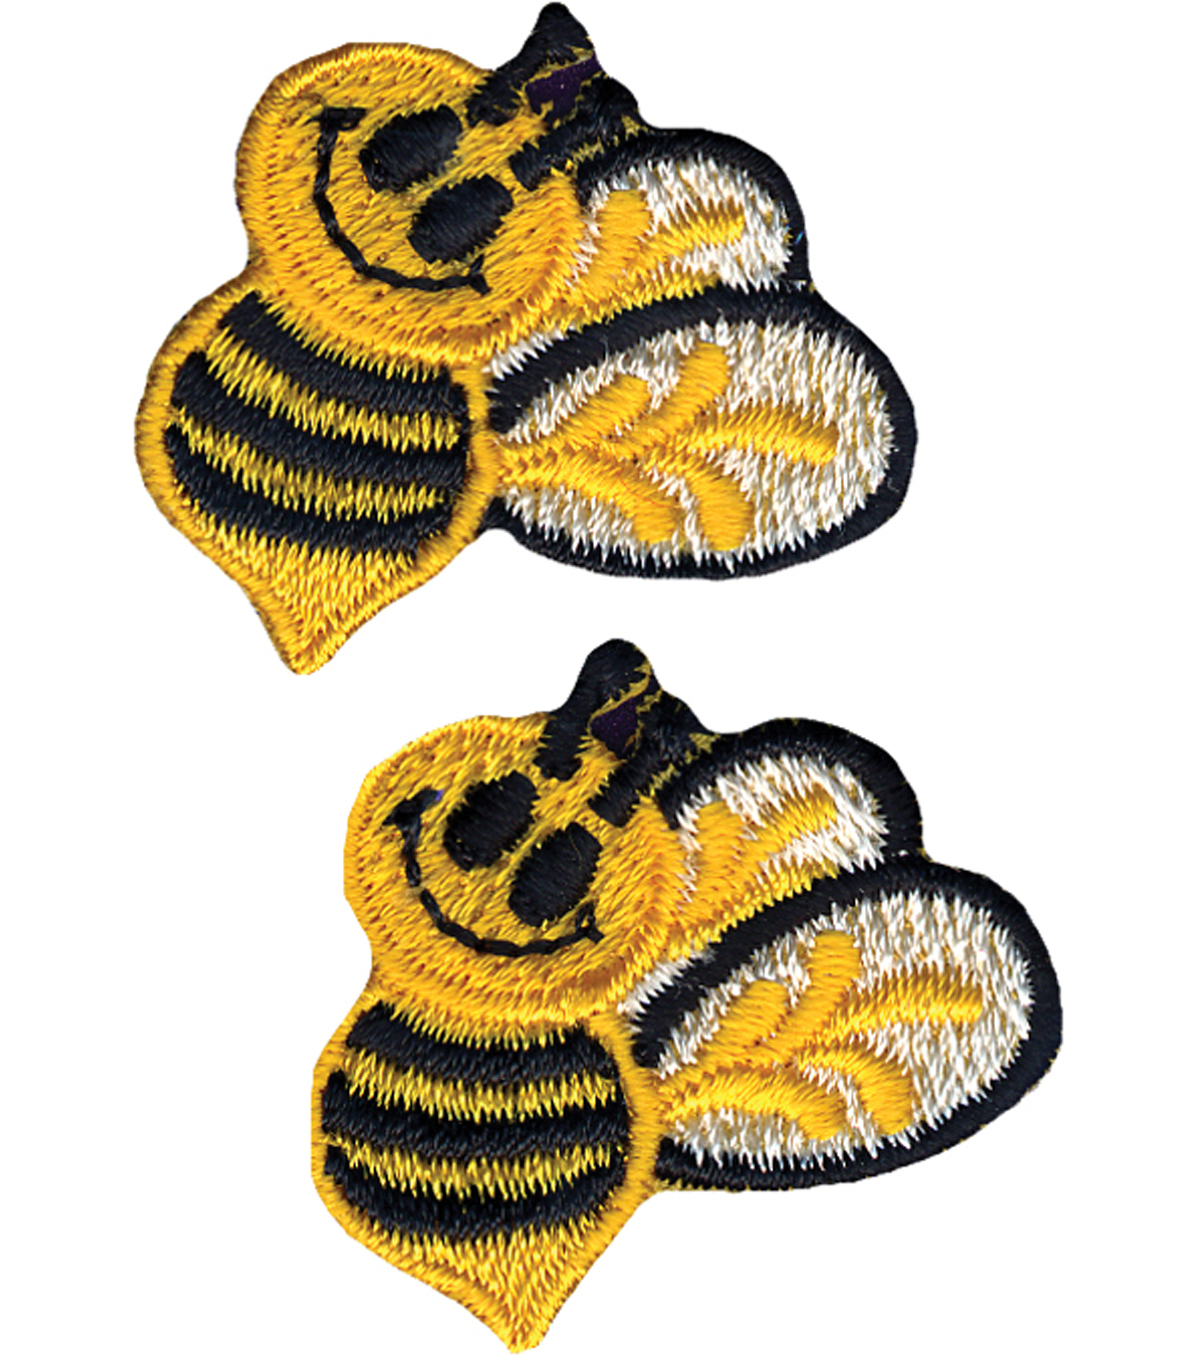 Wrights Iron-On Appliques-Bumble Bees 1\u0022X1-1/2\u0022 2/Pkg